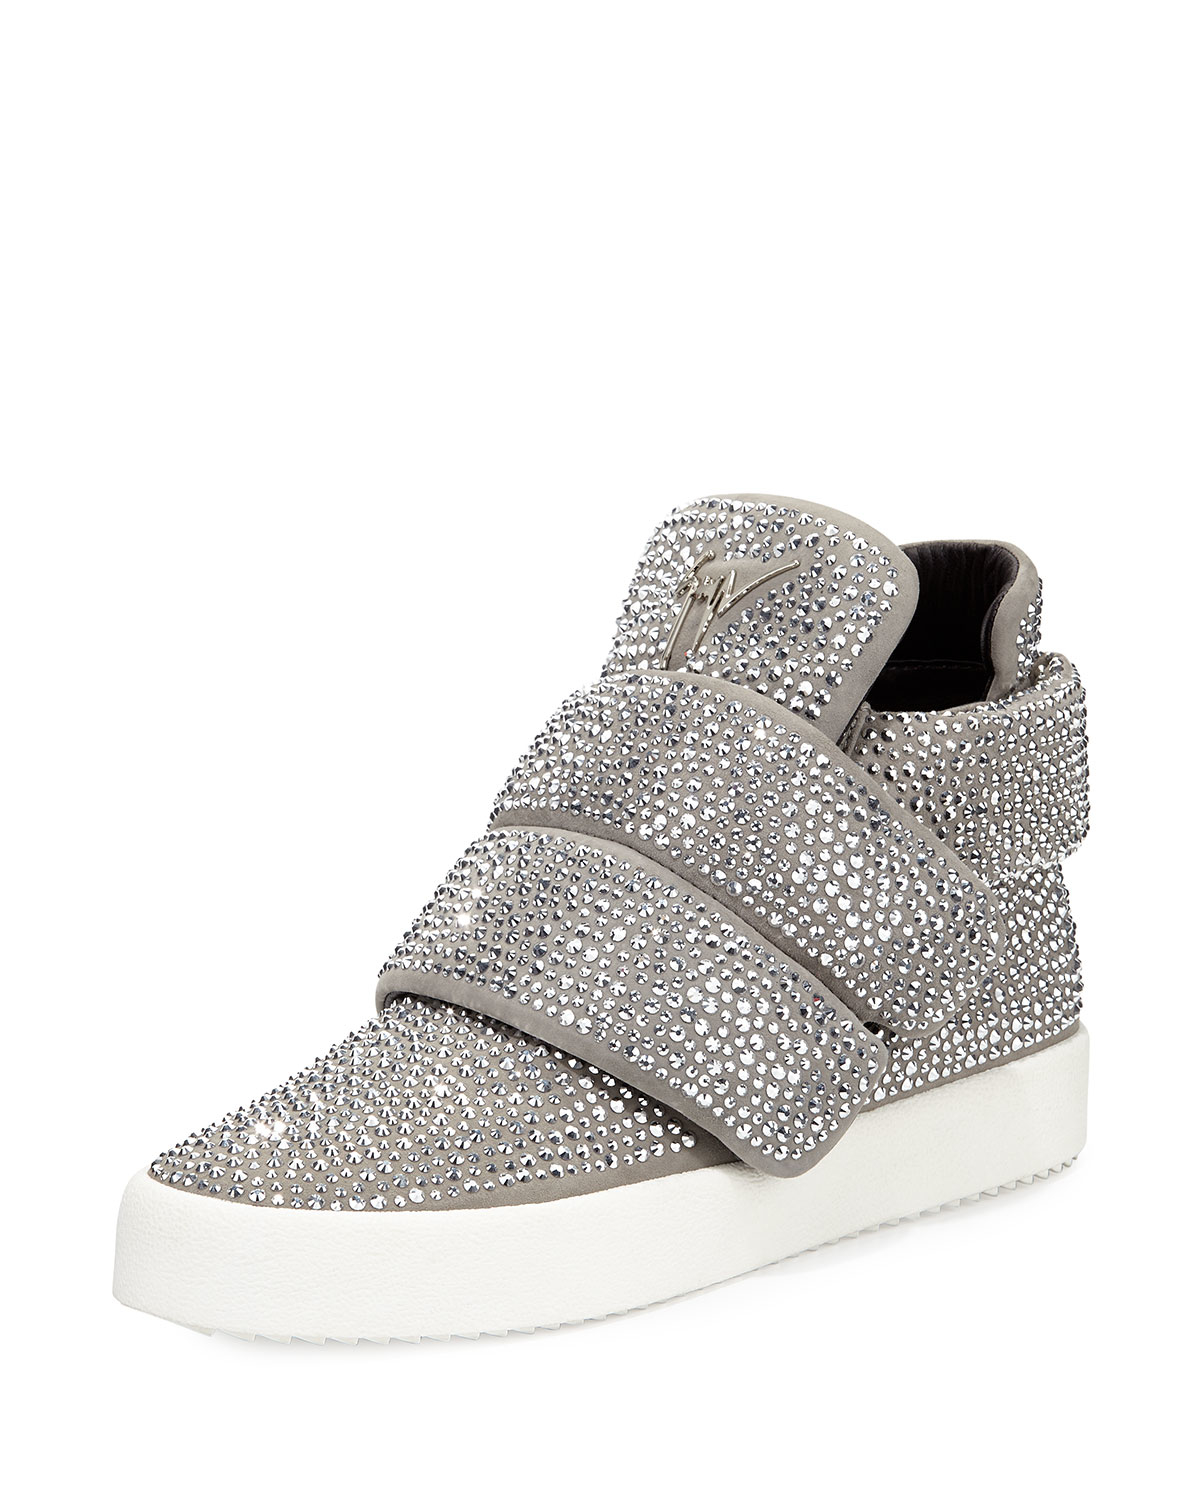 Lyst - Giuseppe Zanotti Crystal-Embellished High-Top ...